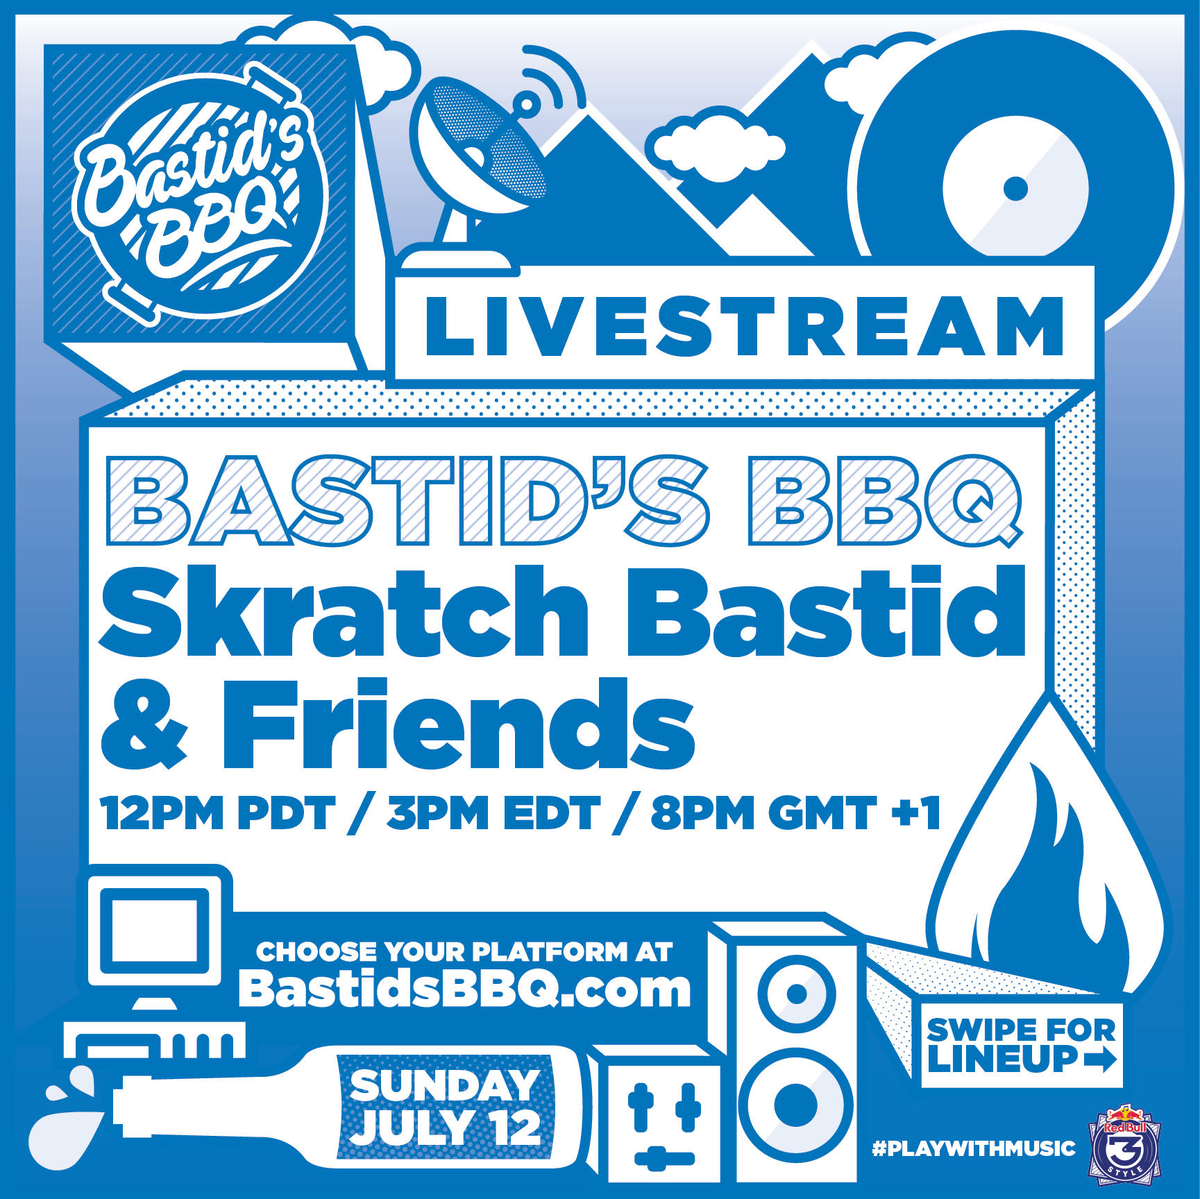 YO GUYS - TOMORROW IS BASTID'S BBQ AND IT'S GONNA BE LIT! All the homies from all across North America gonna be playing all day!  It all starts at 3PM so check https://t.co/XTq8UfBclg for all the goods! https://t.co/dcdDnZDW2G